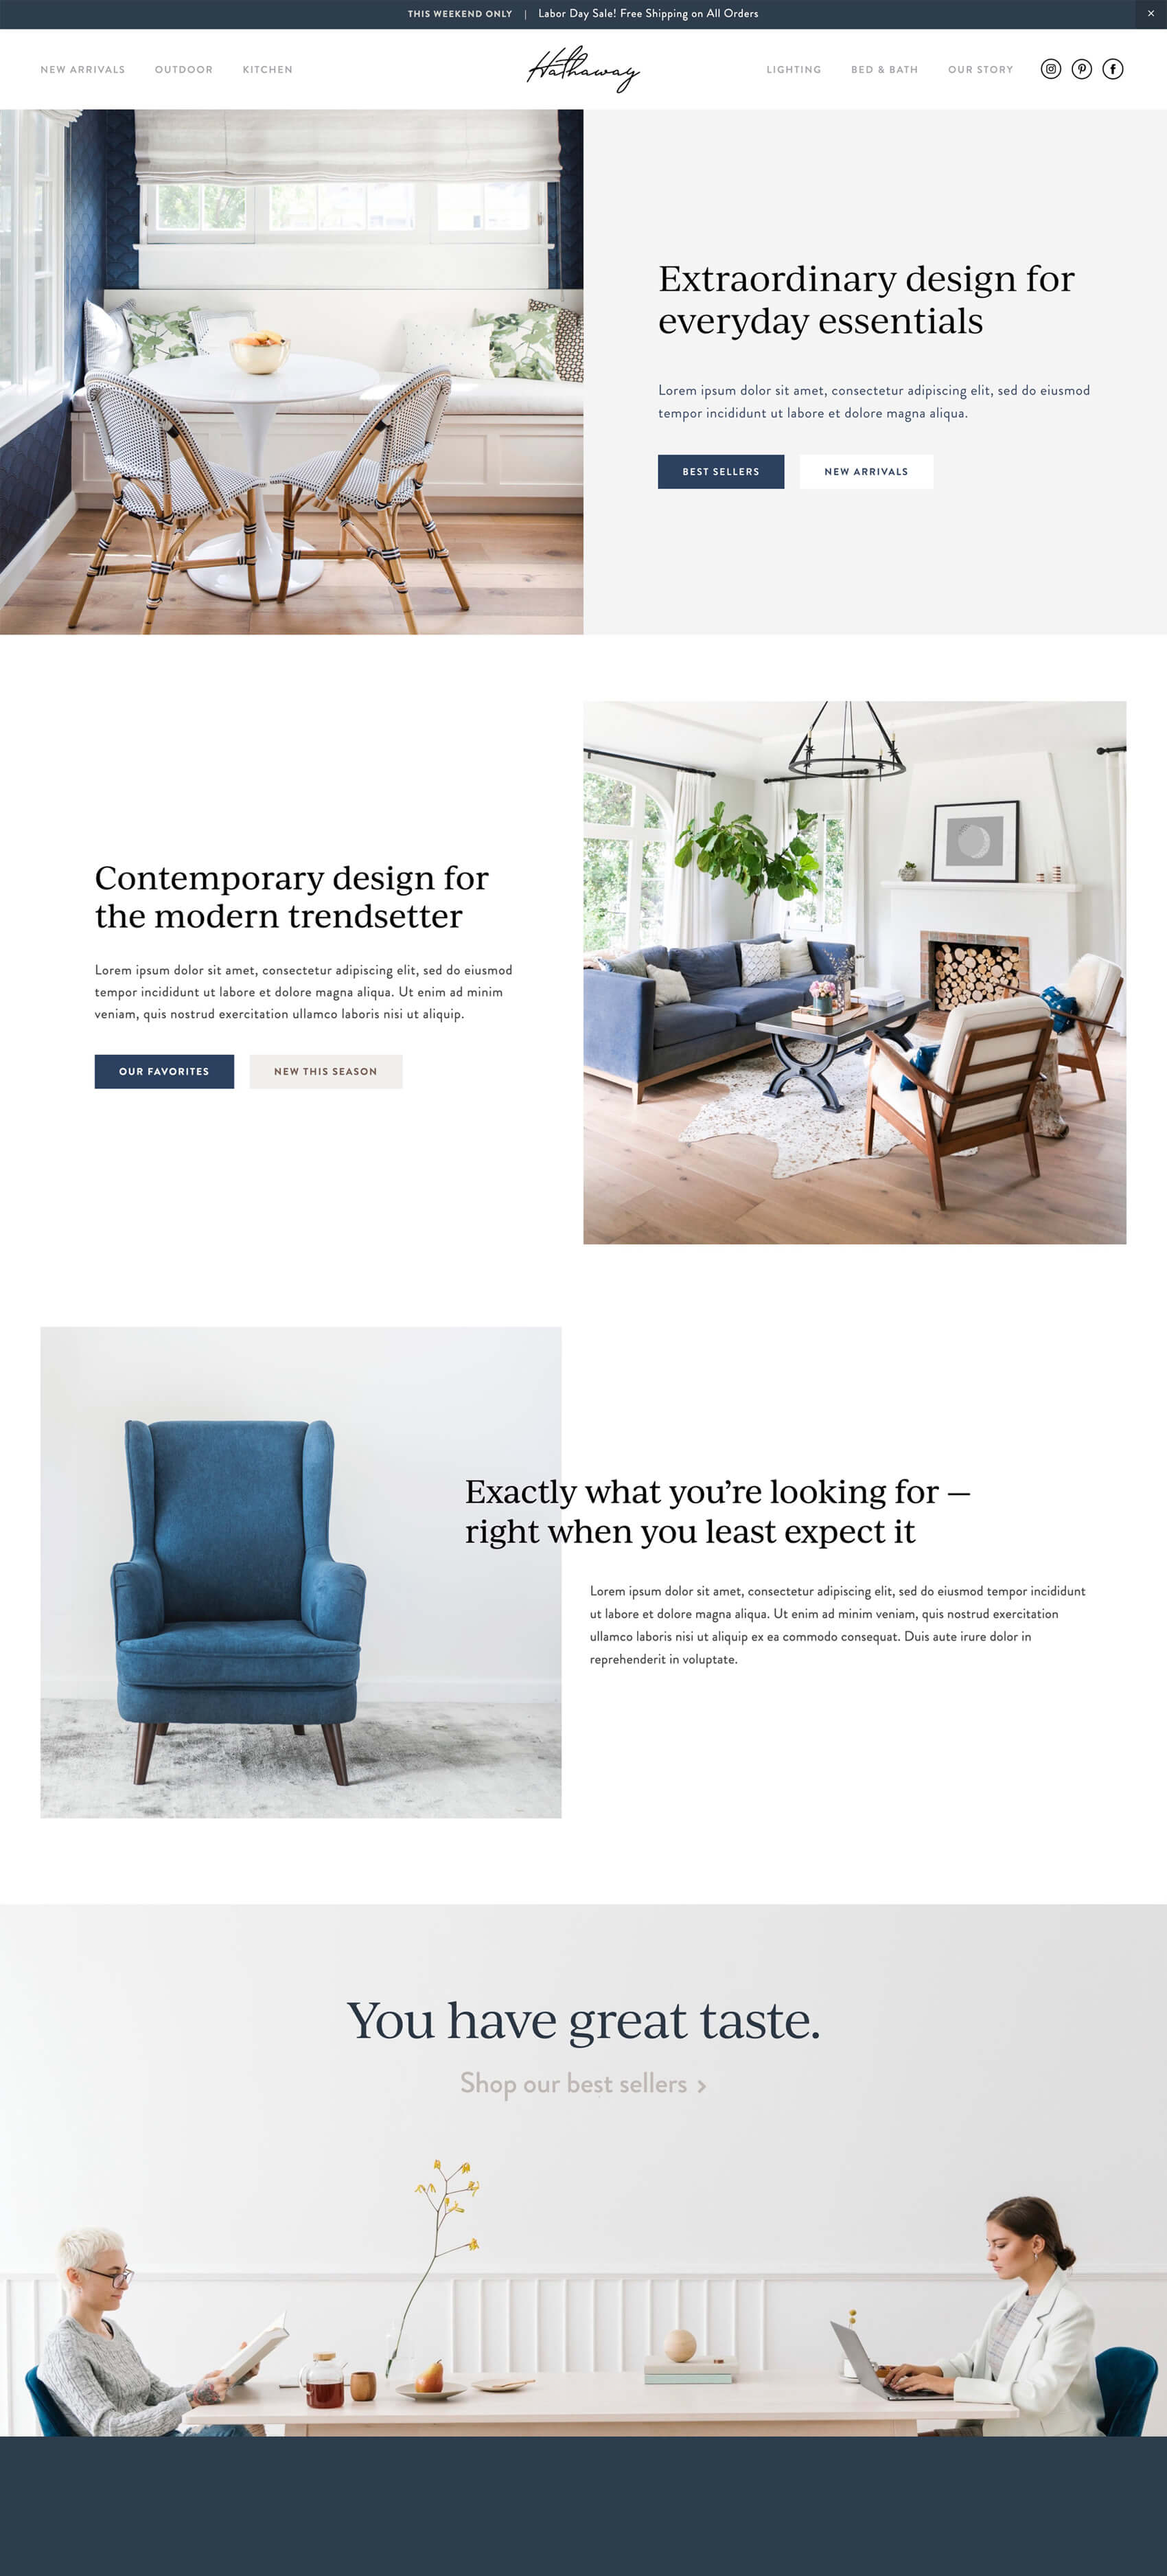 Landing Page - Hathaway's editorial-style landing page is inspired by clean lines and a modern magazine layout.